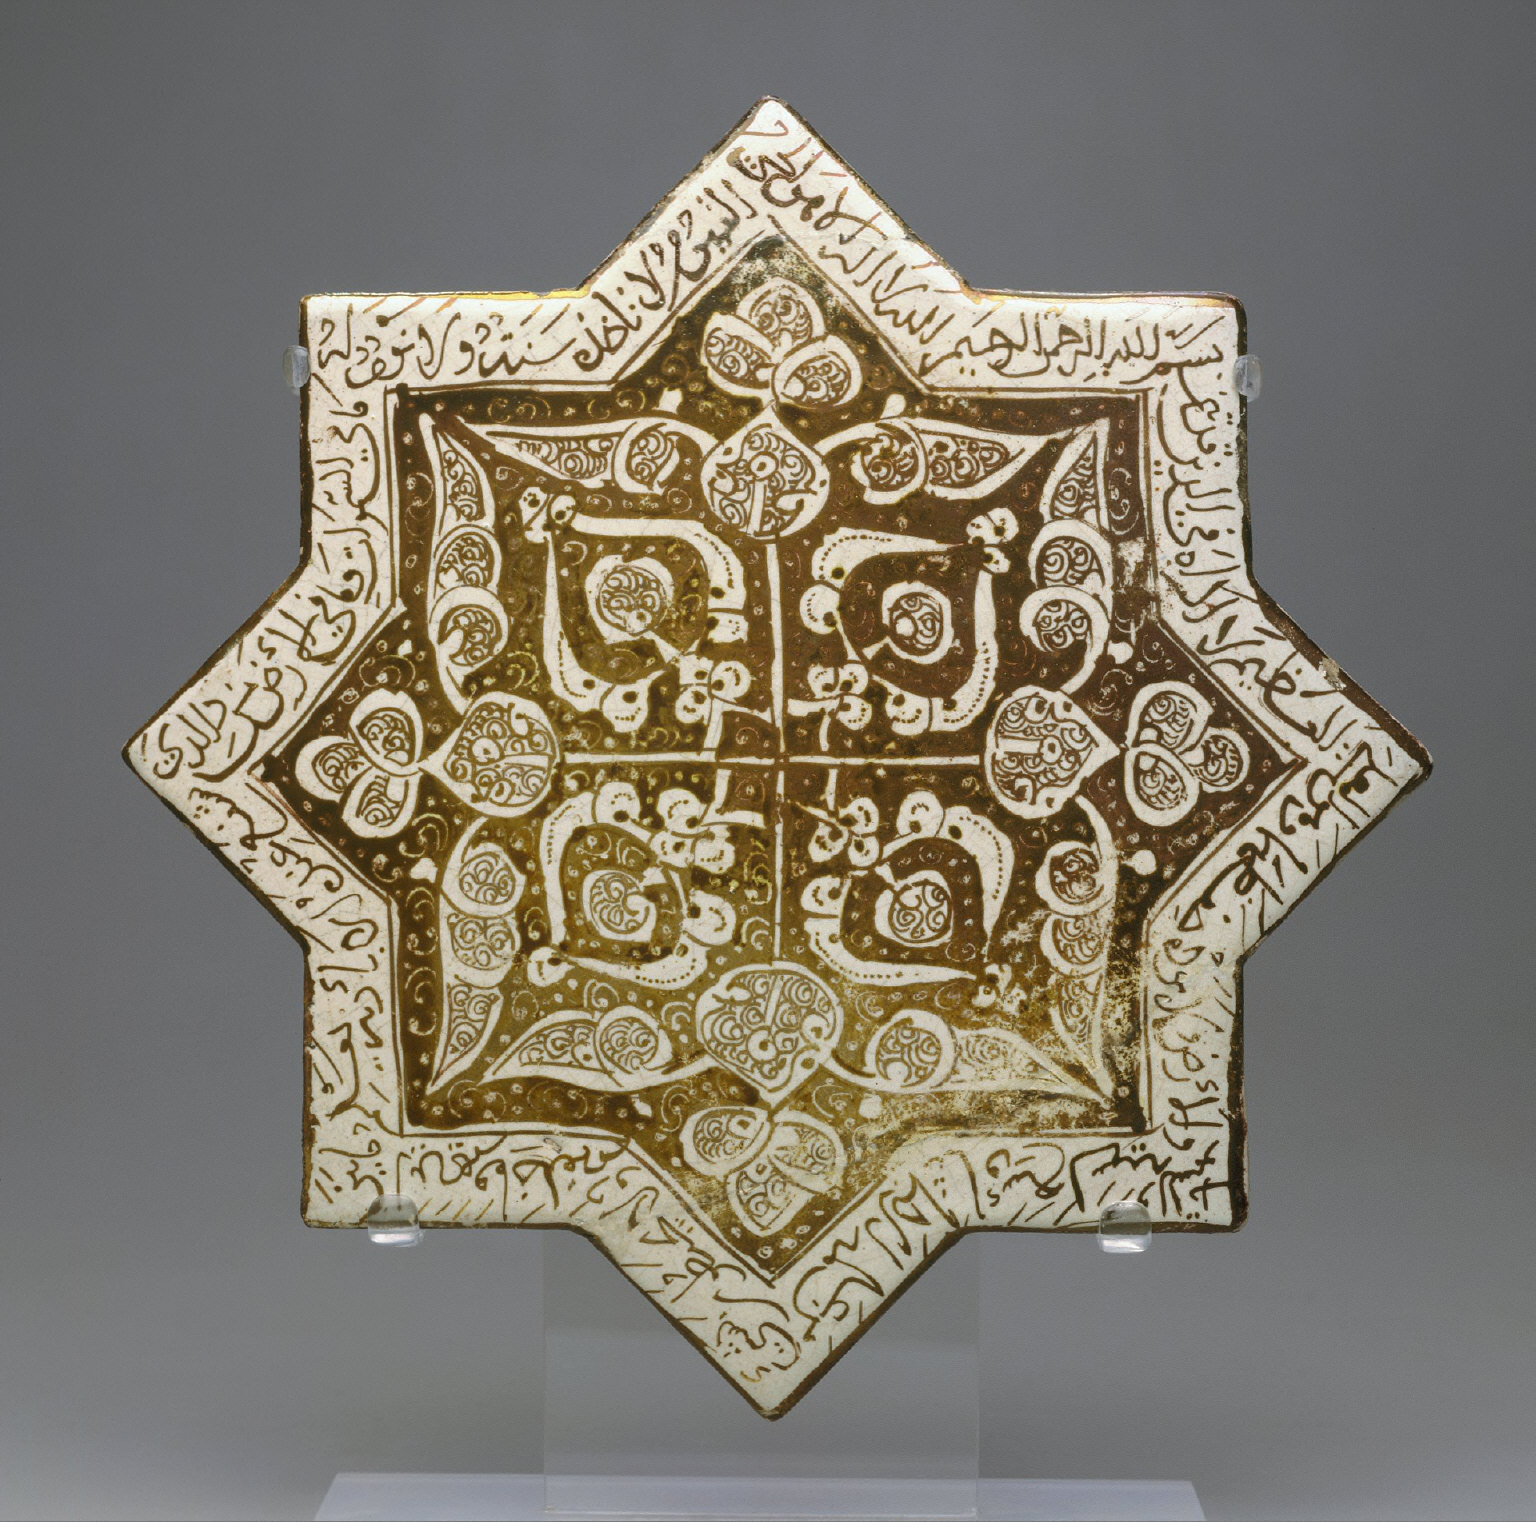 Star Tile from the Imamzadeh Yahyah, Veramin